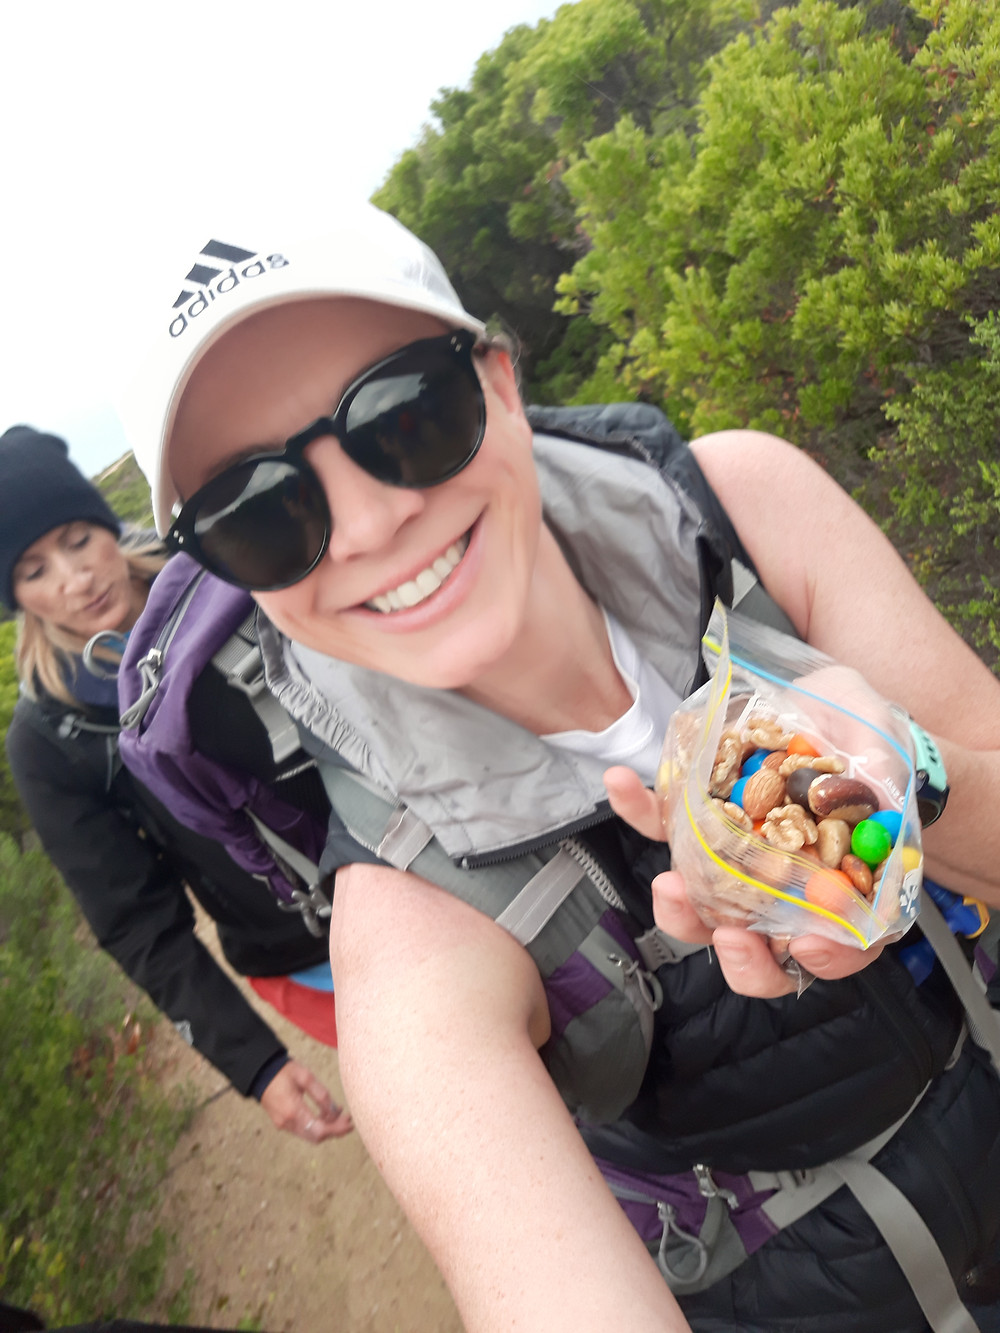 Trail Snacks- almonds, brasil nuts, cashews, walnuts and M&M's - a little sugar to lift the spirit!